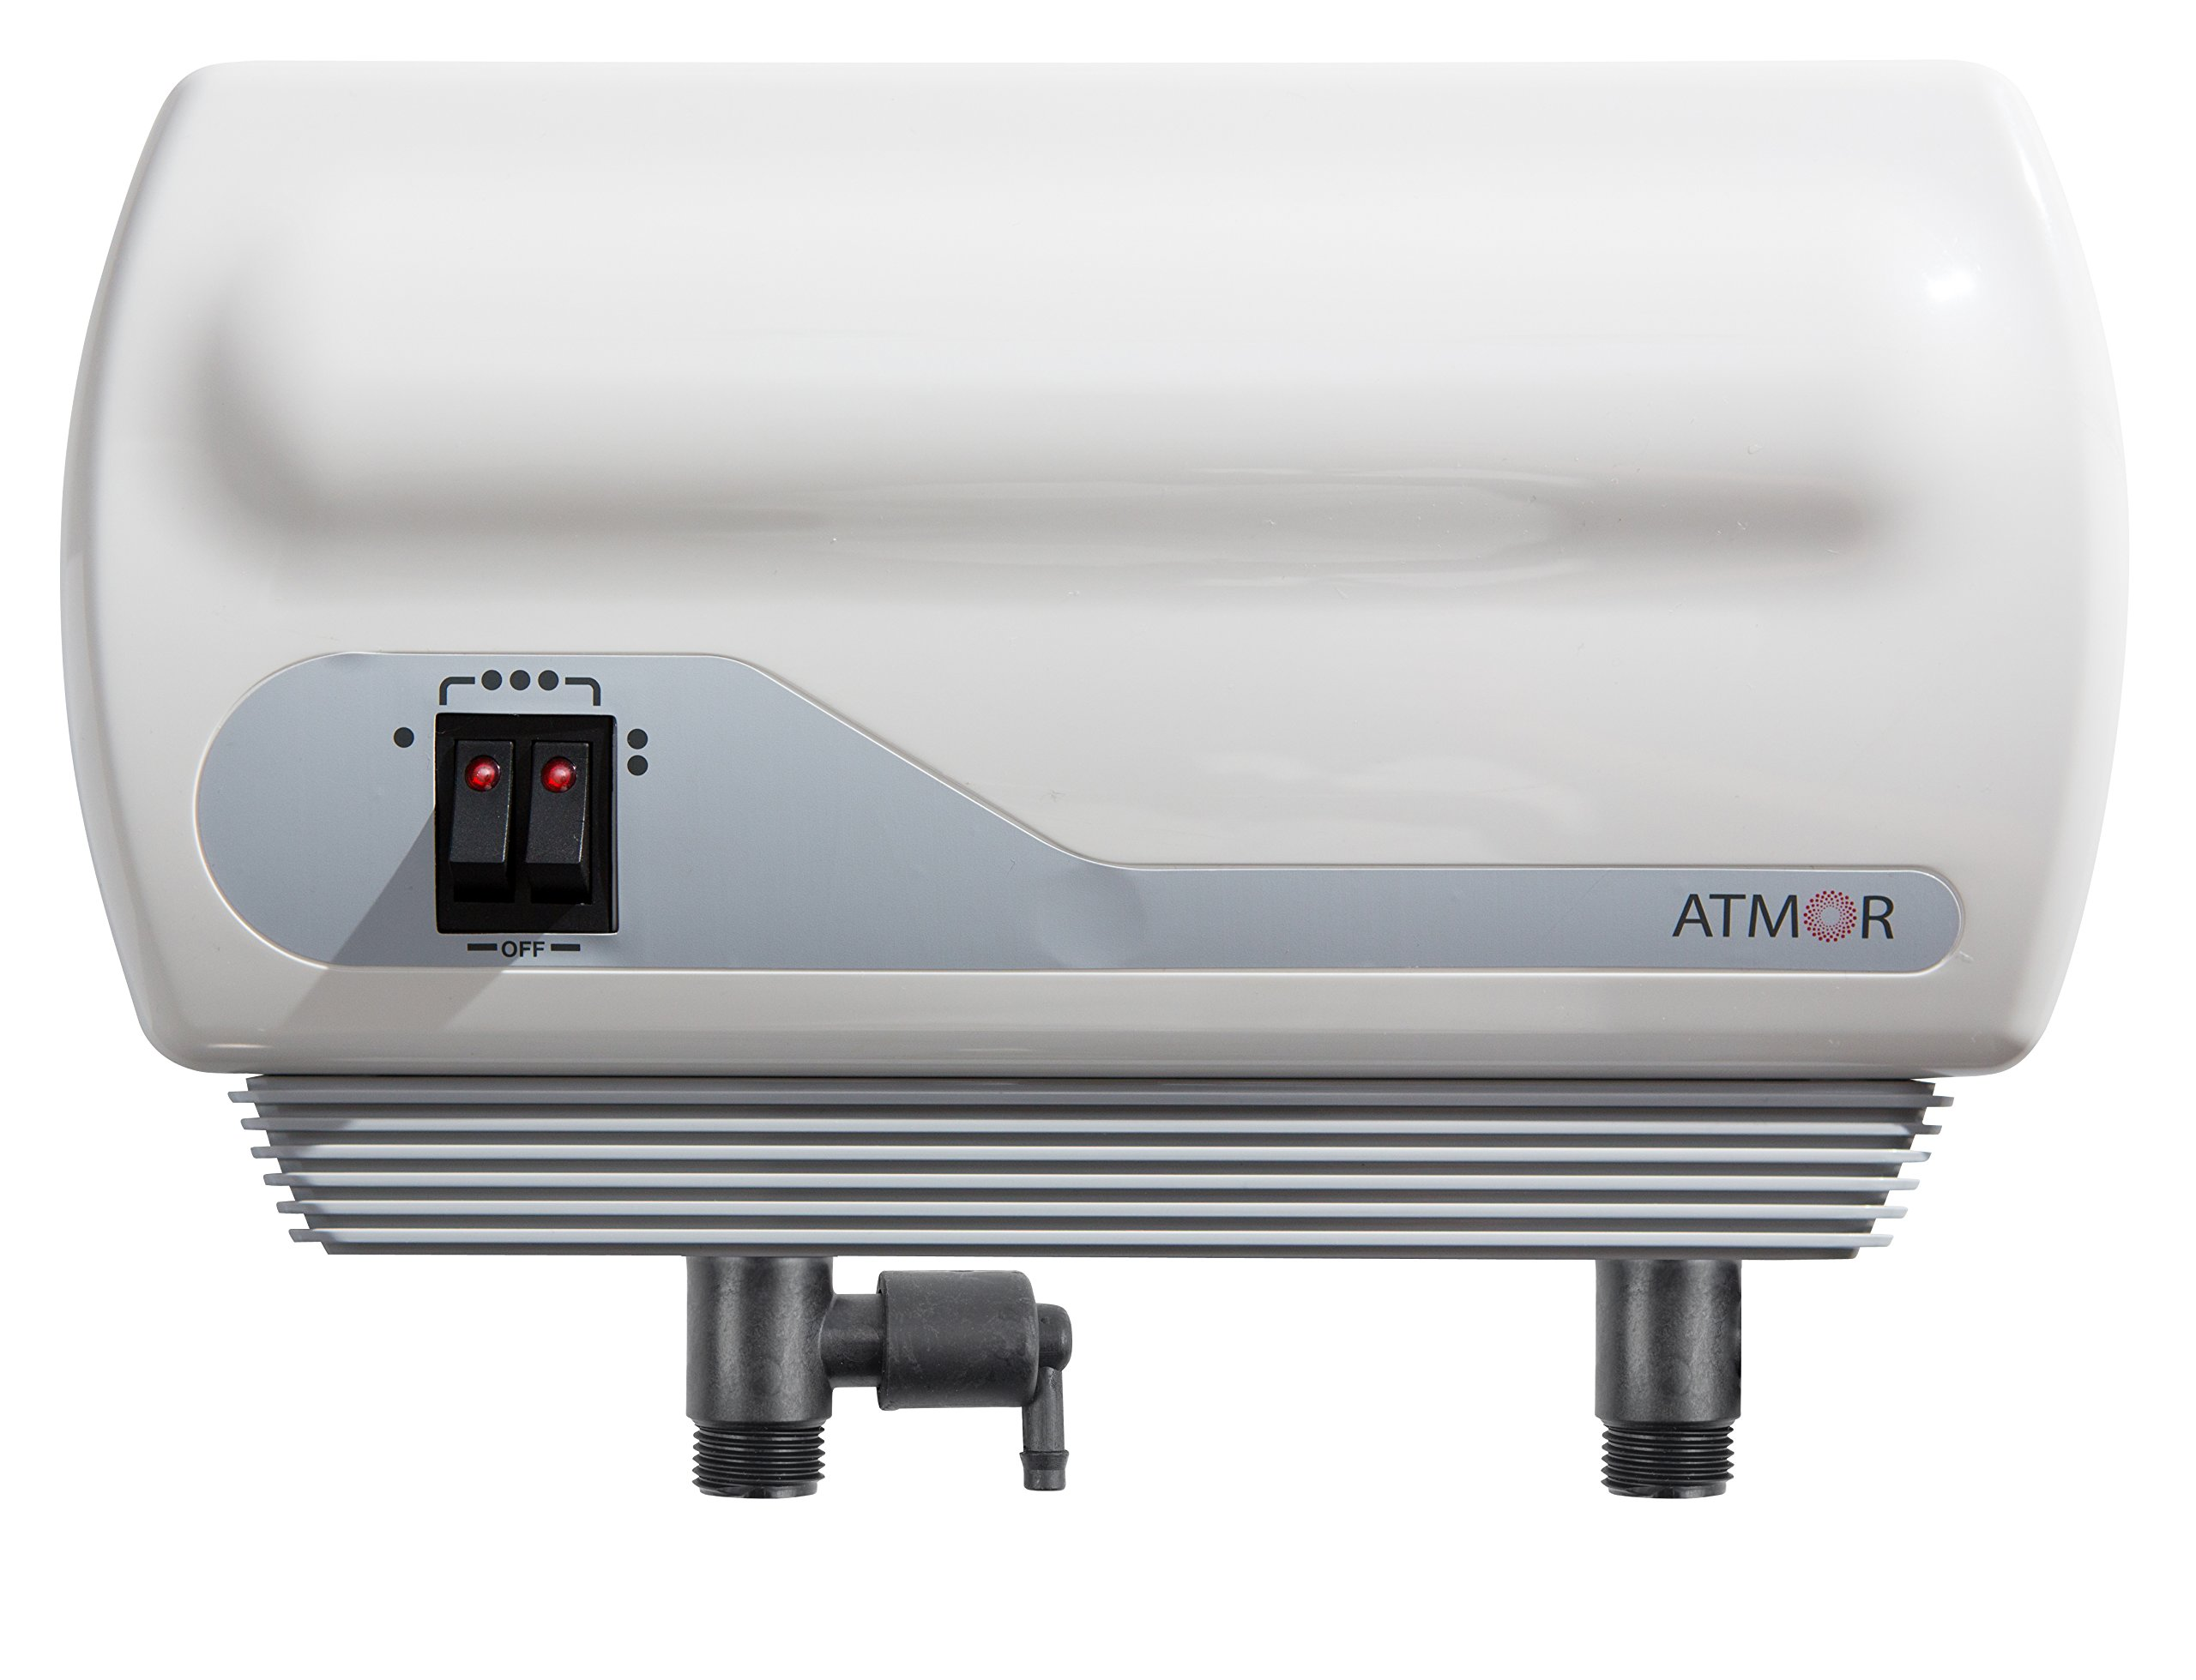 Atmor 0.5 GPM Point-Of-Use Tankless Electric Instant Water Heater with Pressure Relief Device (PRD) and 0.5 GPM Sink Aerator, SINGLE SINK APPLICATION